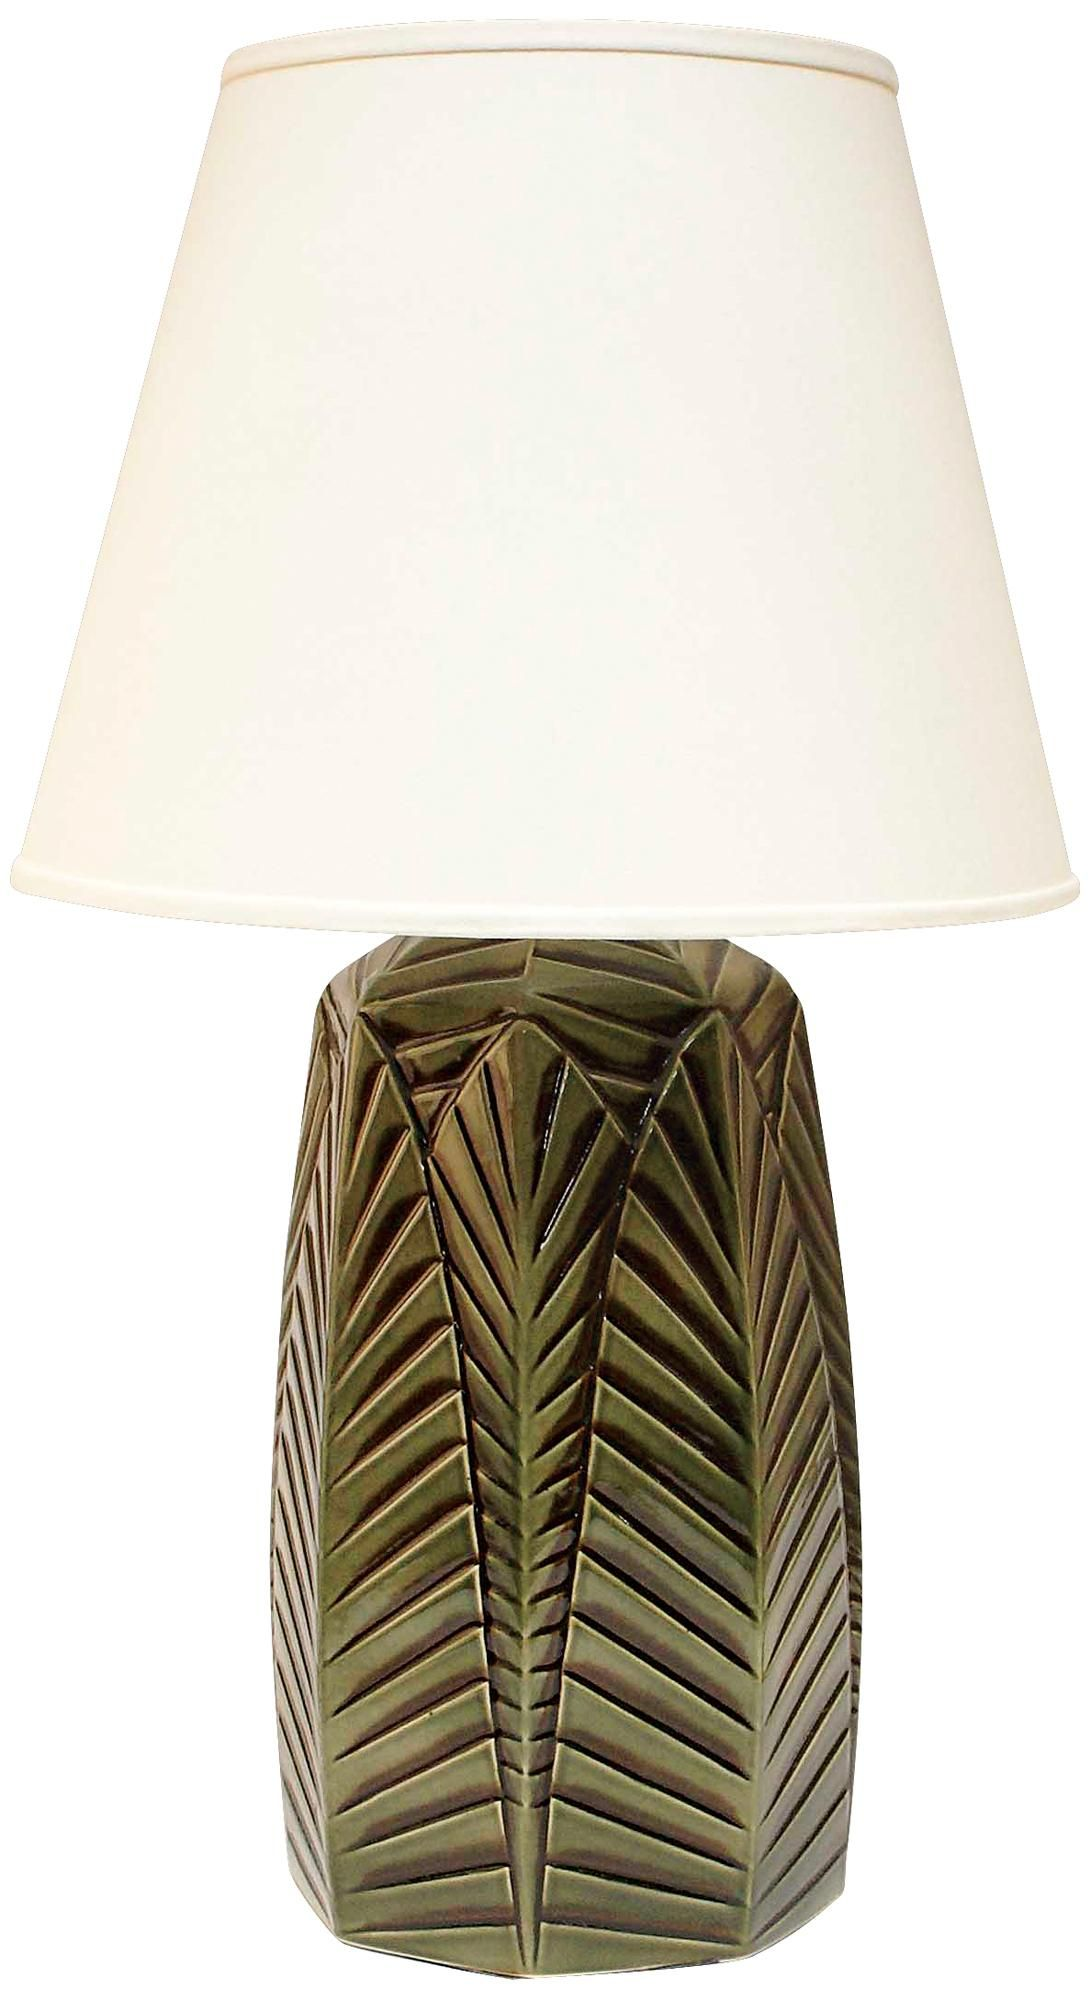 Haeger Potteries Palm Grove Ceramic Table Lamp P1789 Lamps Plus Ceramic Table Lamps Pottery Lamp